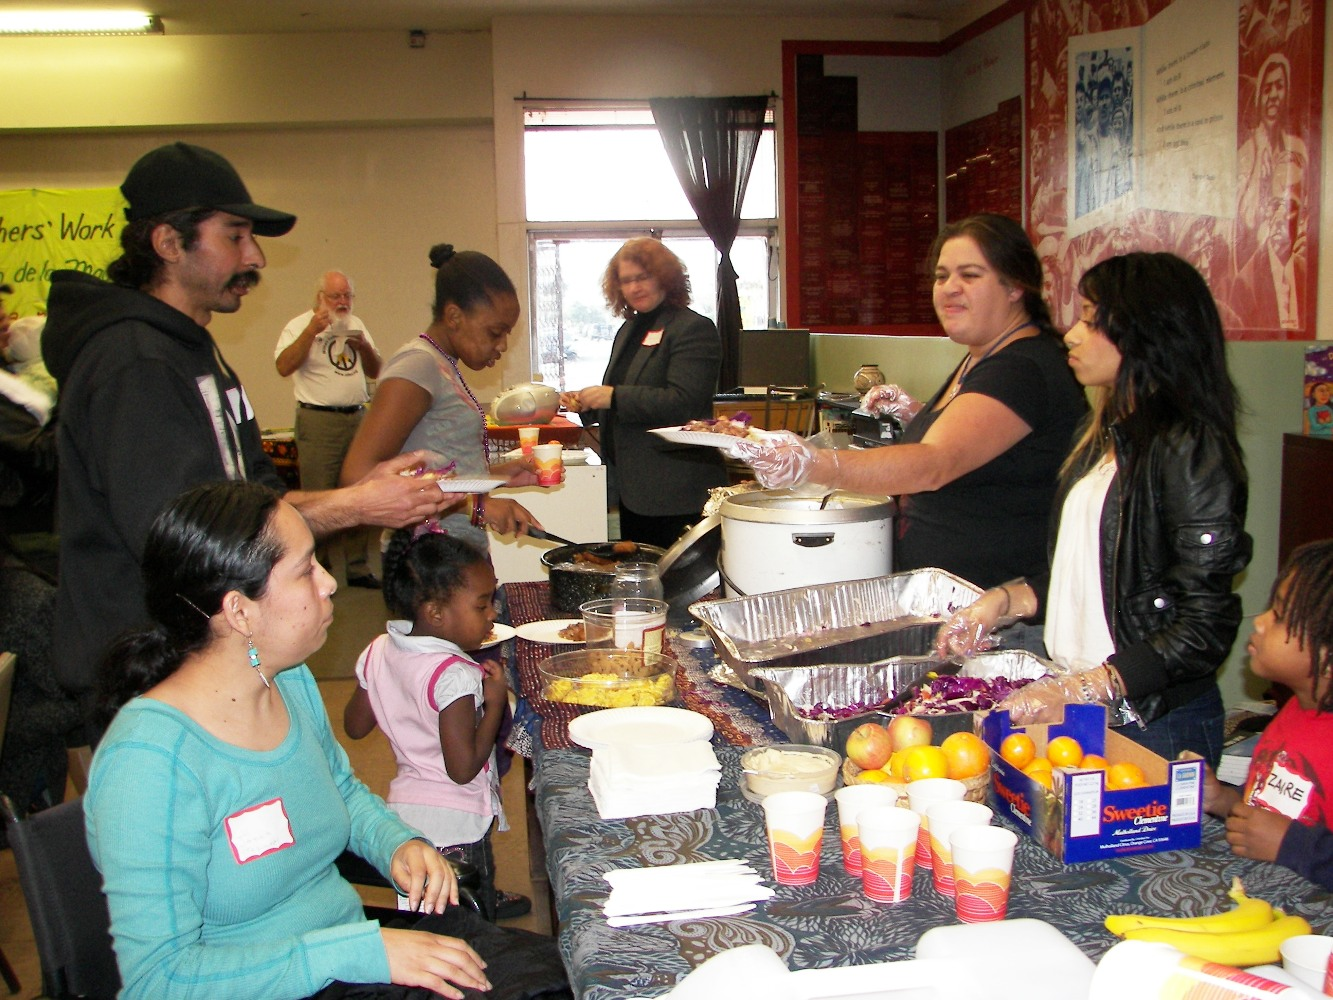 Lunch donated by South Central Farmers & SOL cooperatives, and Alexandria House